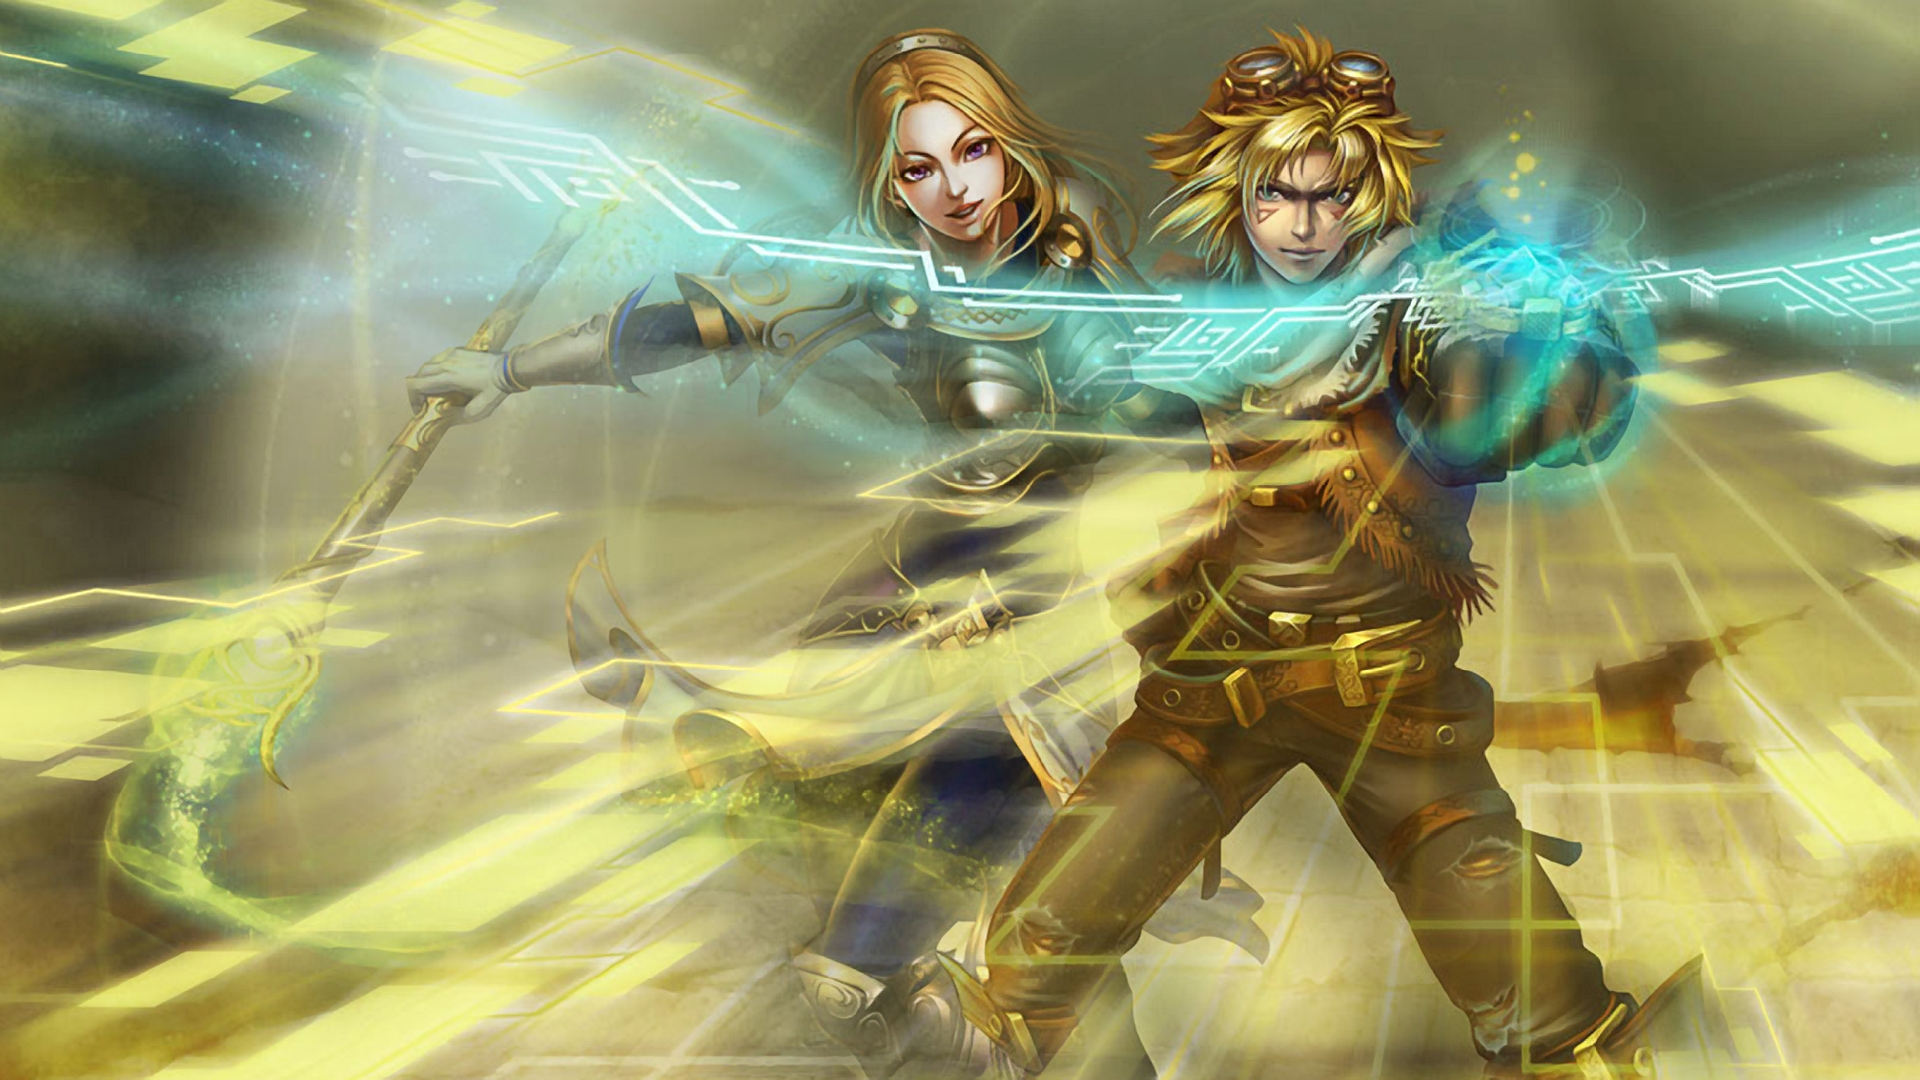 Lux & Ezreal wallpaper